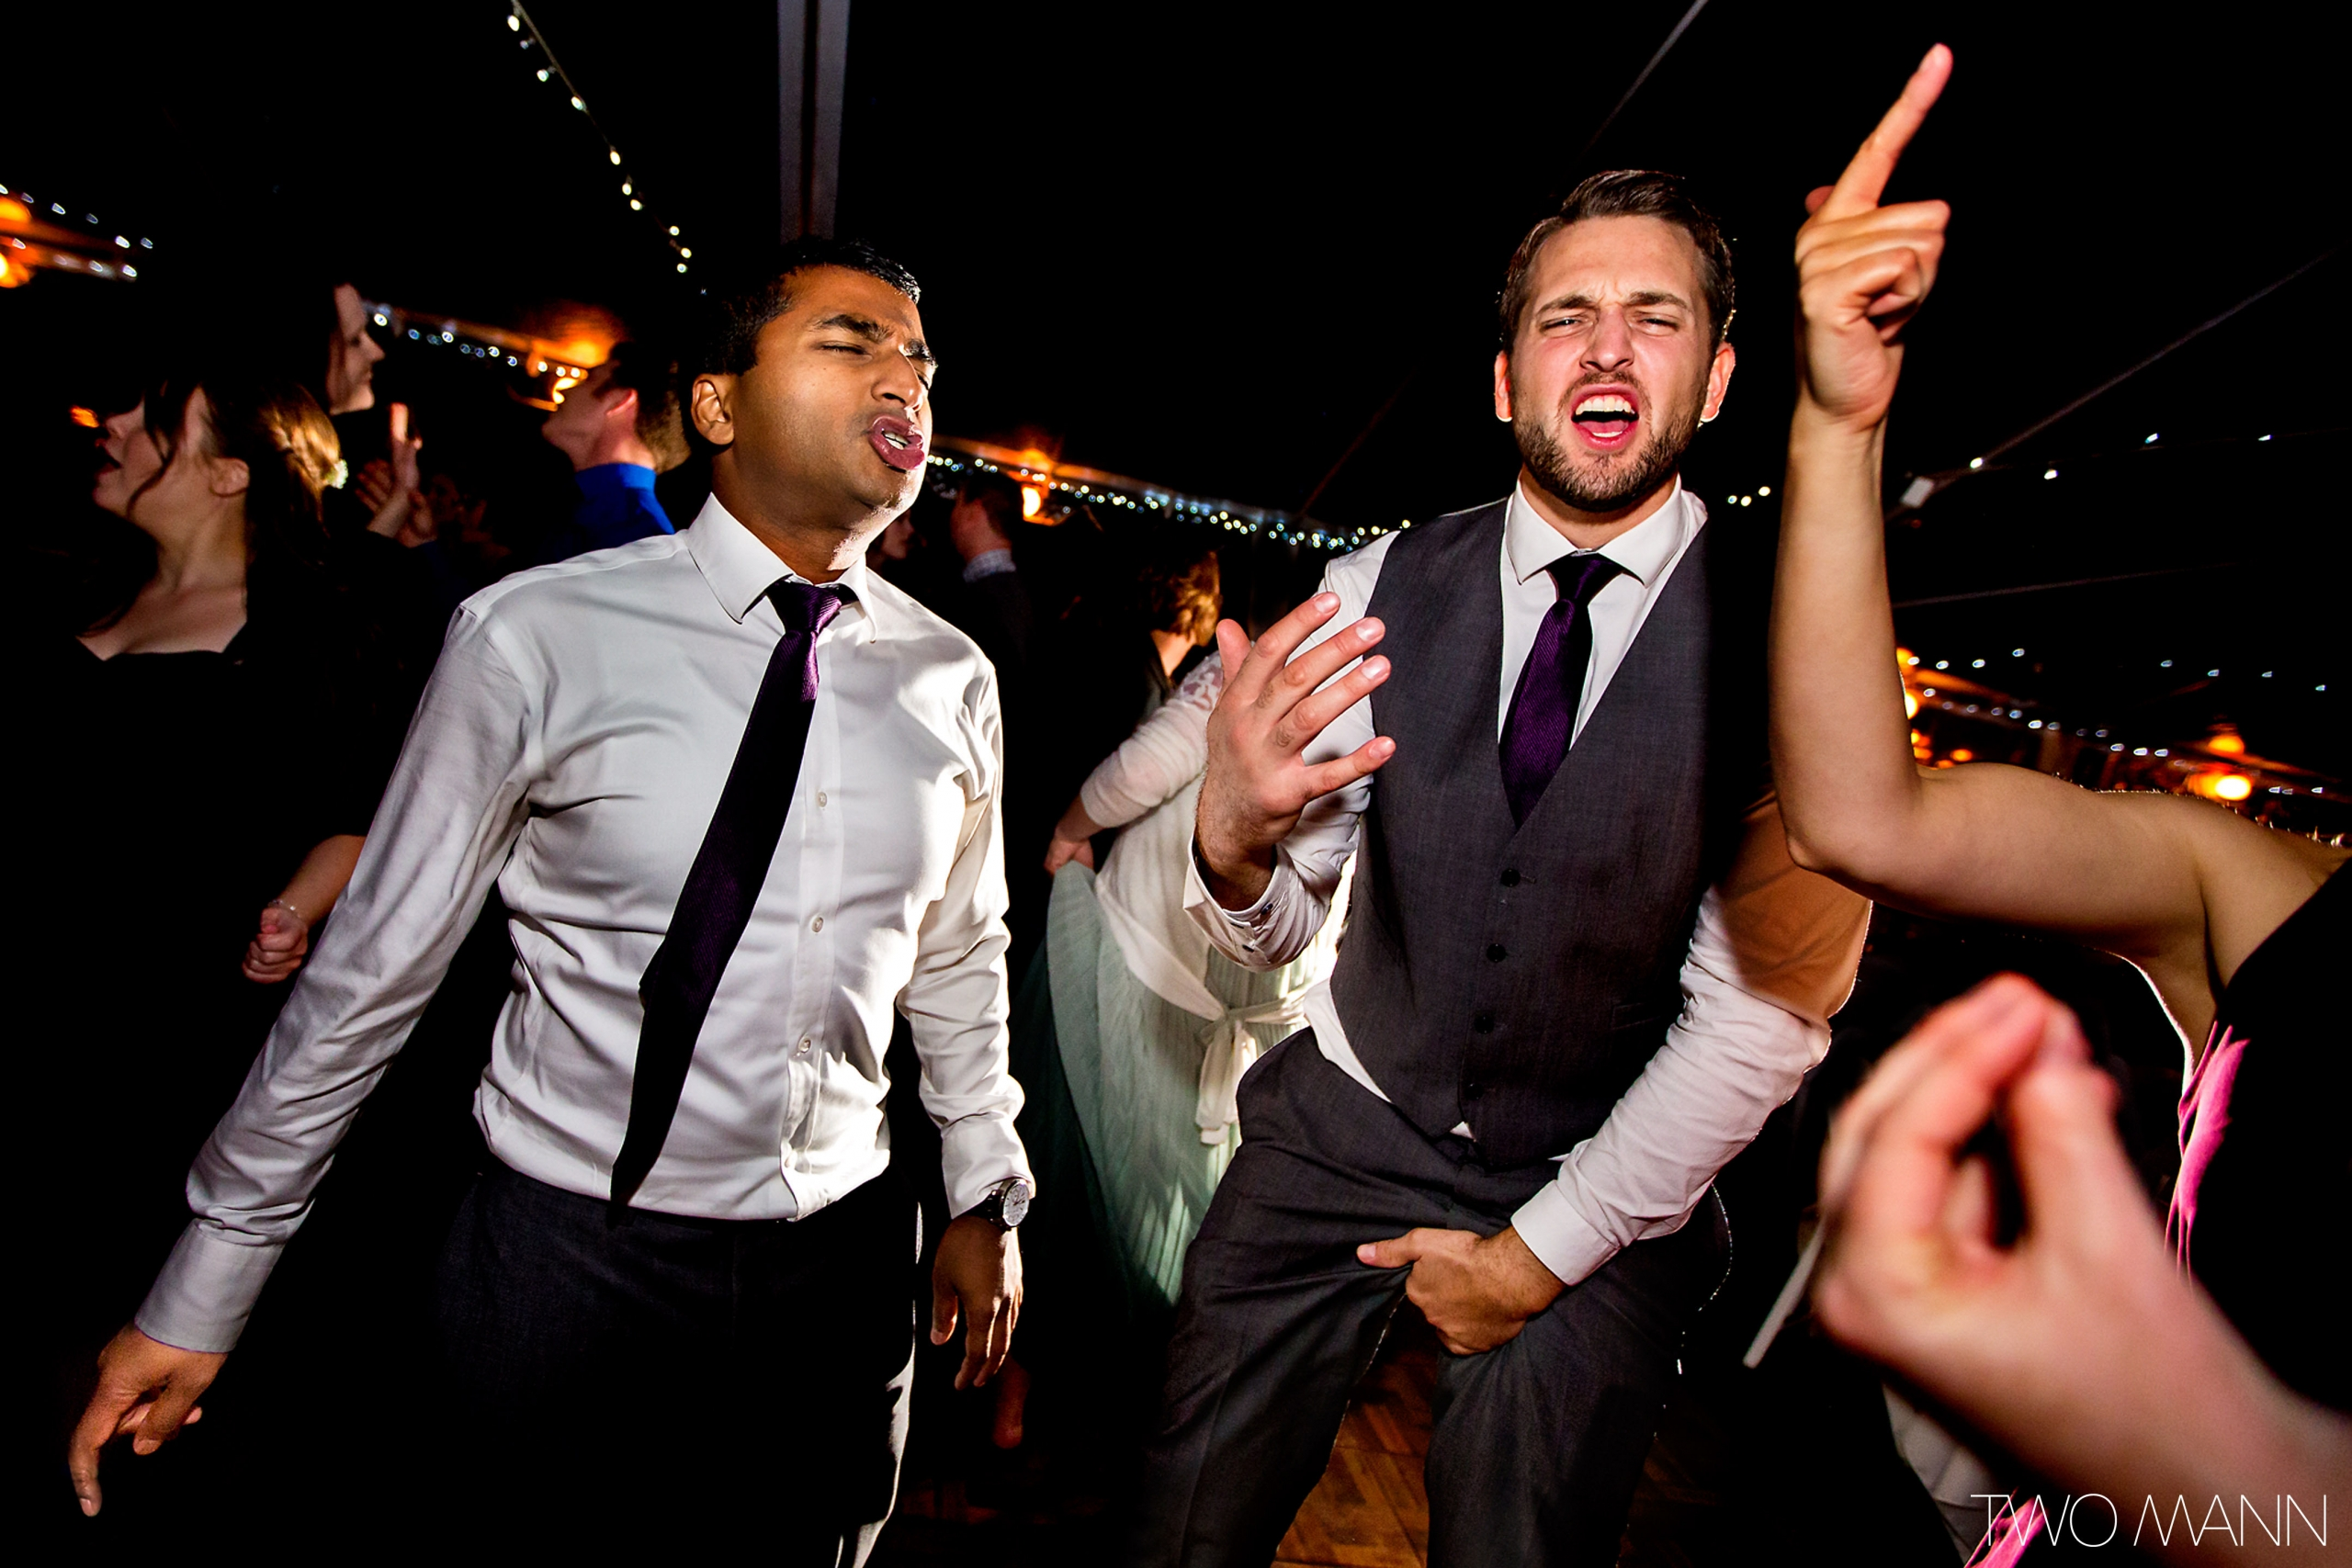 groom and friends dancing together at reception